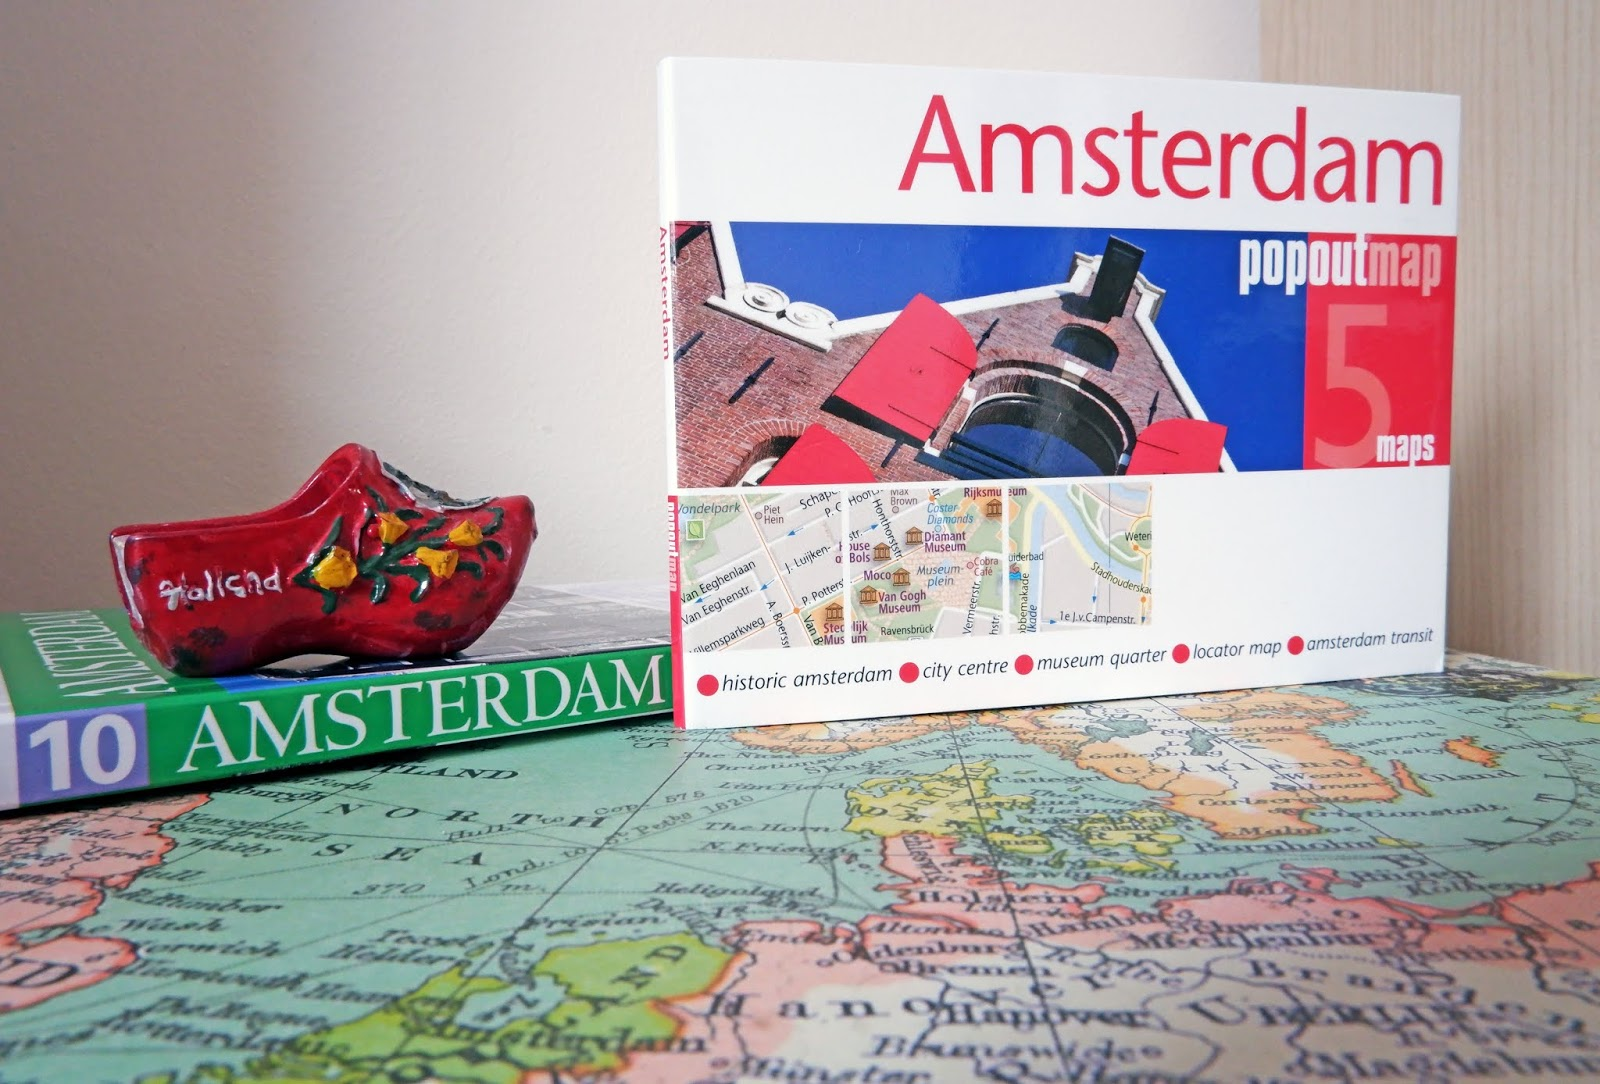 Amsterdam map and travel guide